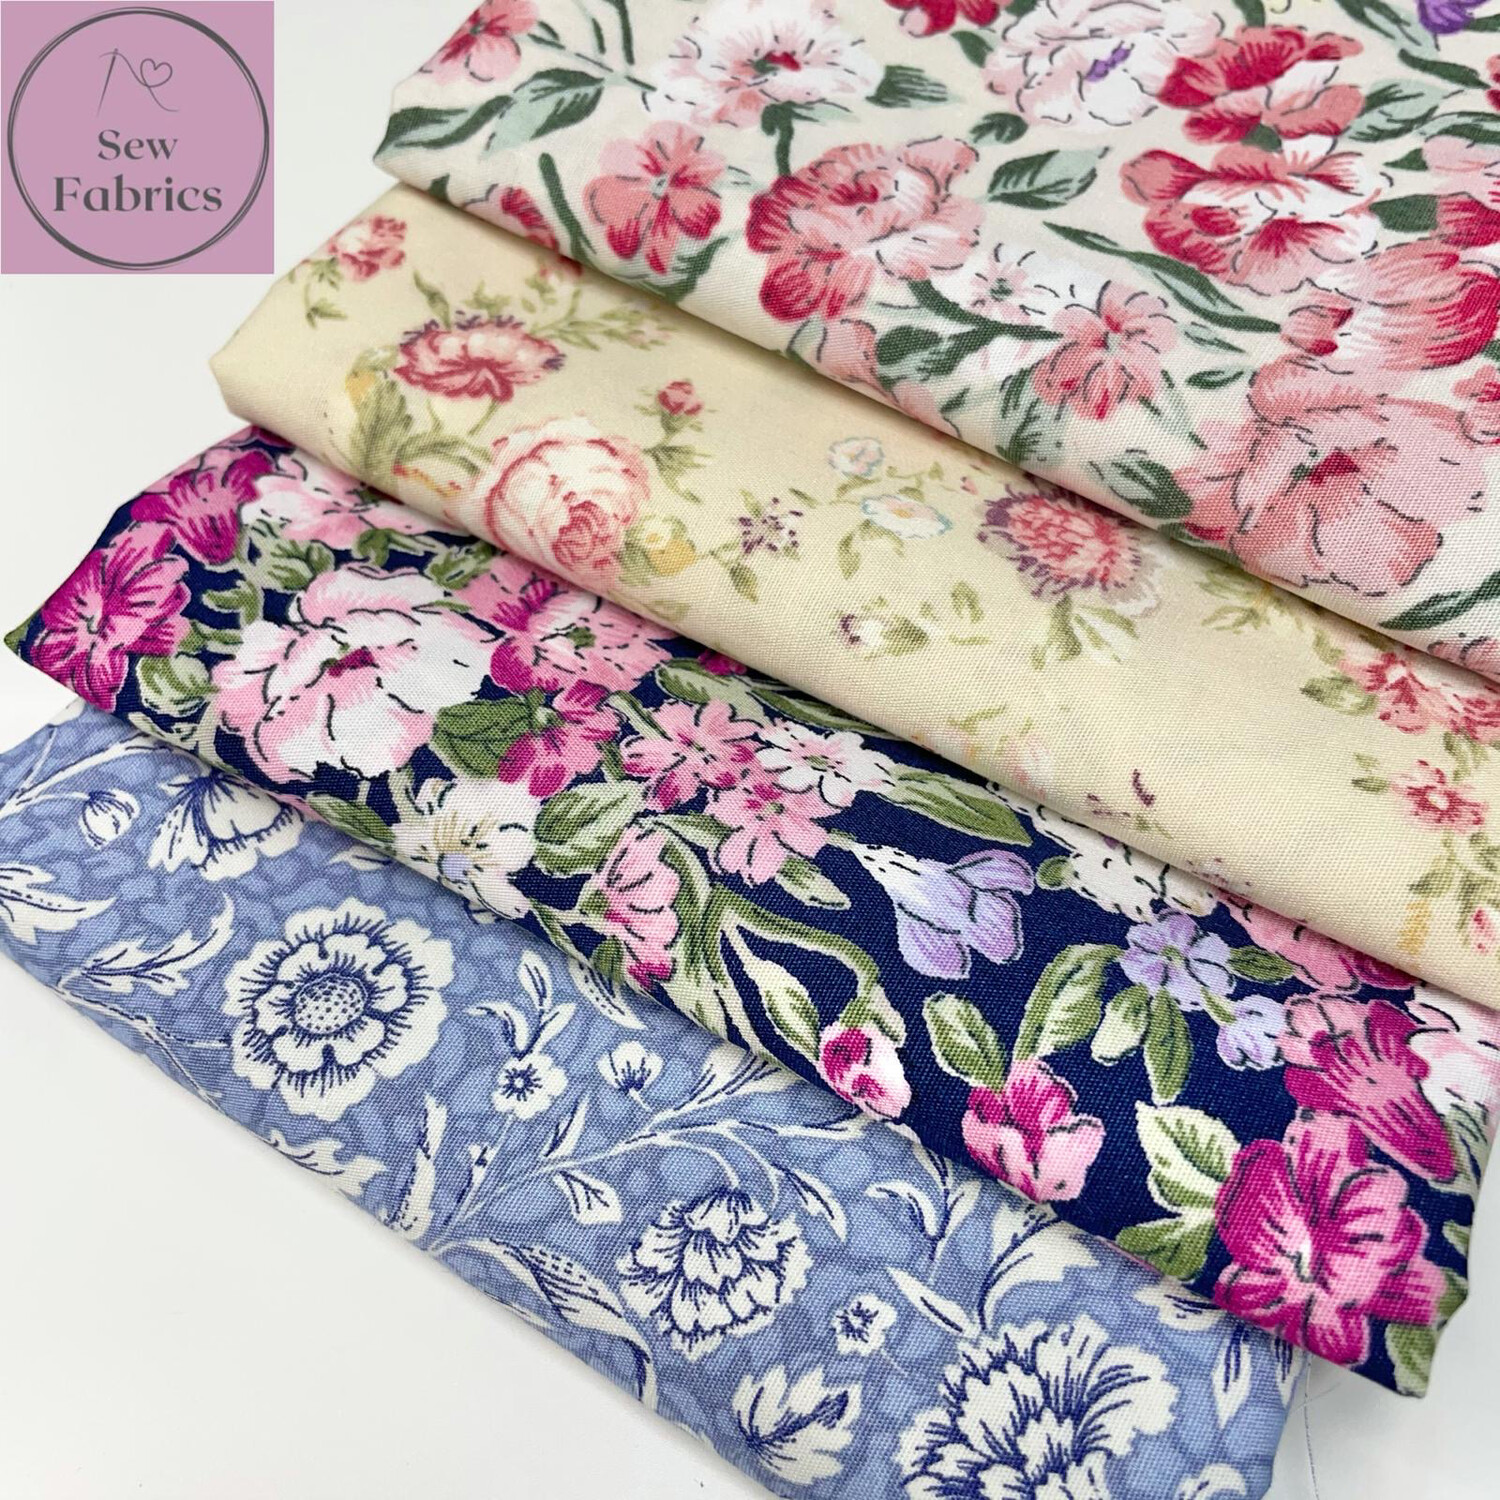 100% Cotton Poplin Rose and Hubble Large Floral 4 x Fat Quarter Bundle, Spring Summer Quilting, Crafting